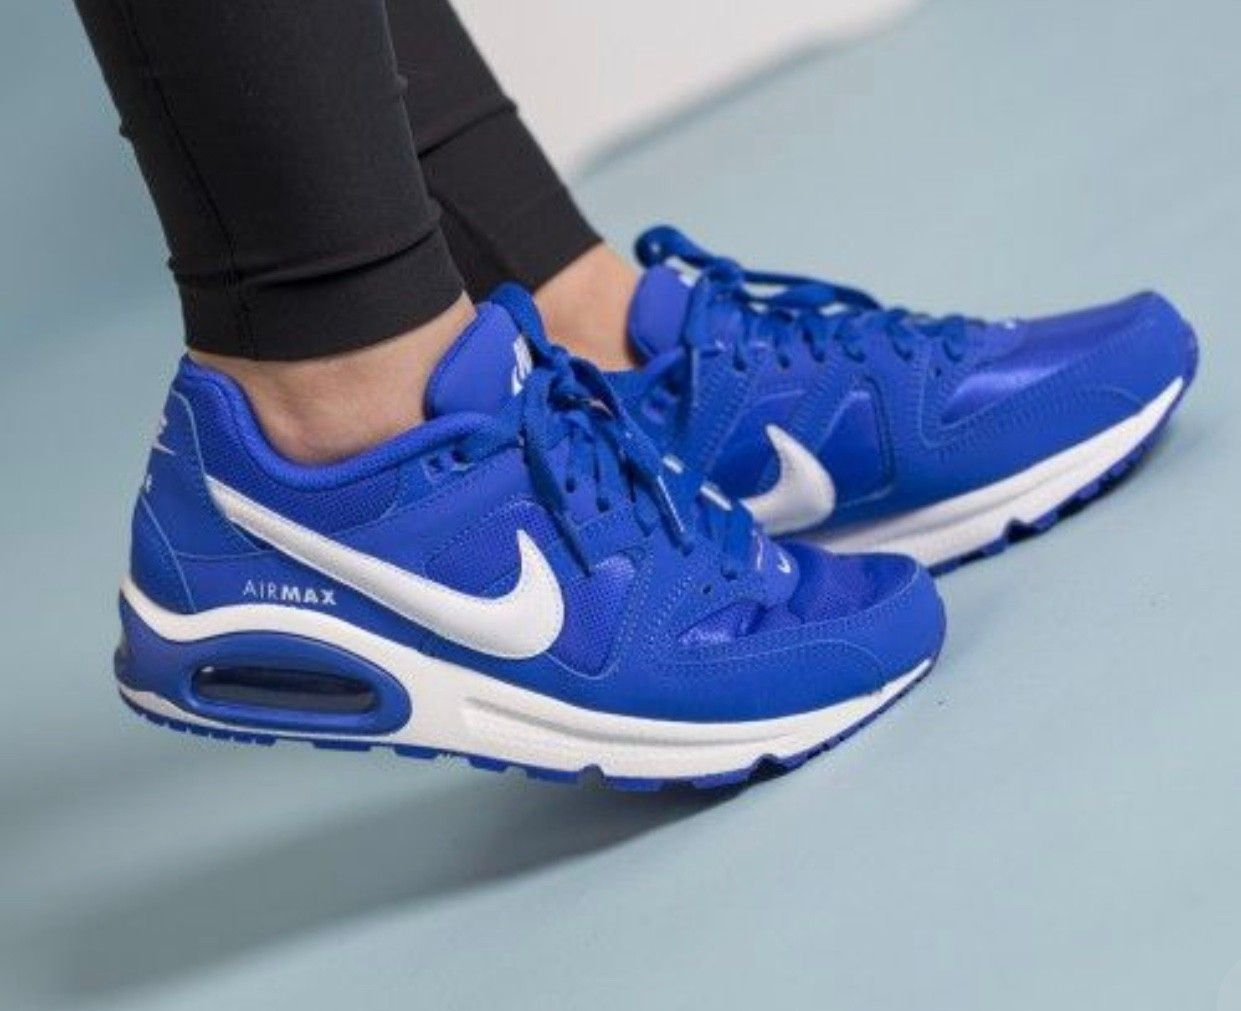 ec9b995808e0 Ubrukte Nike Air Max Command str 38